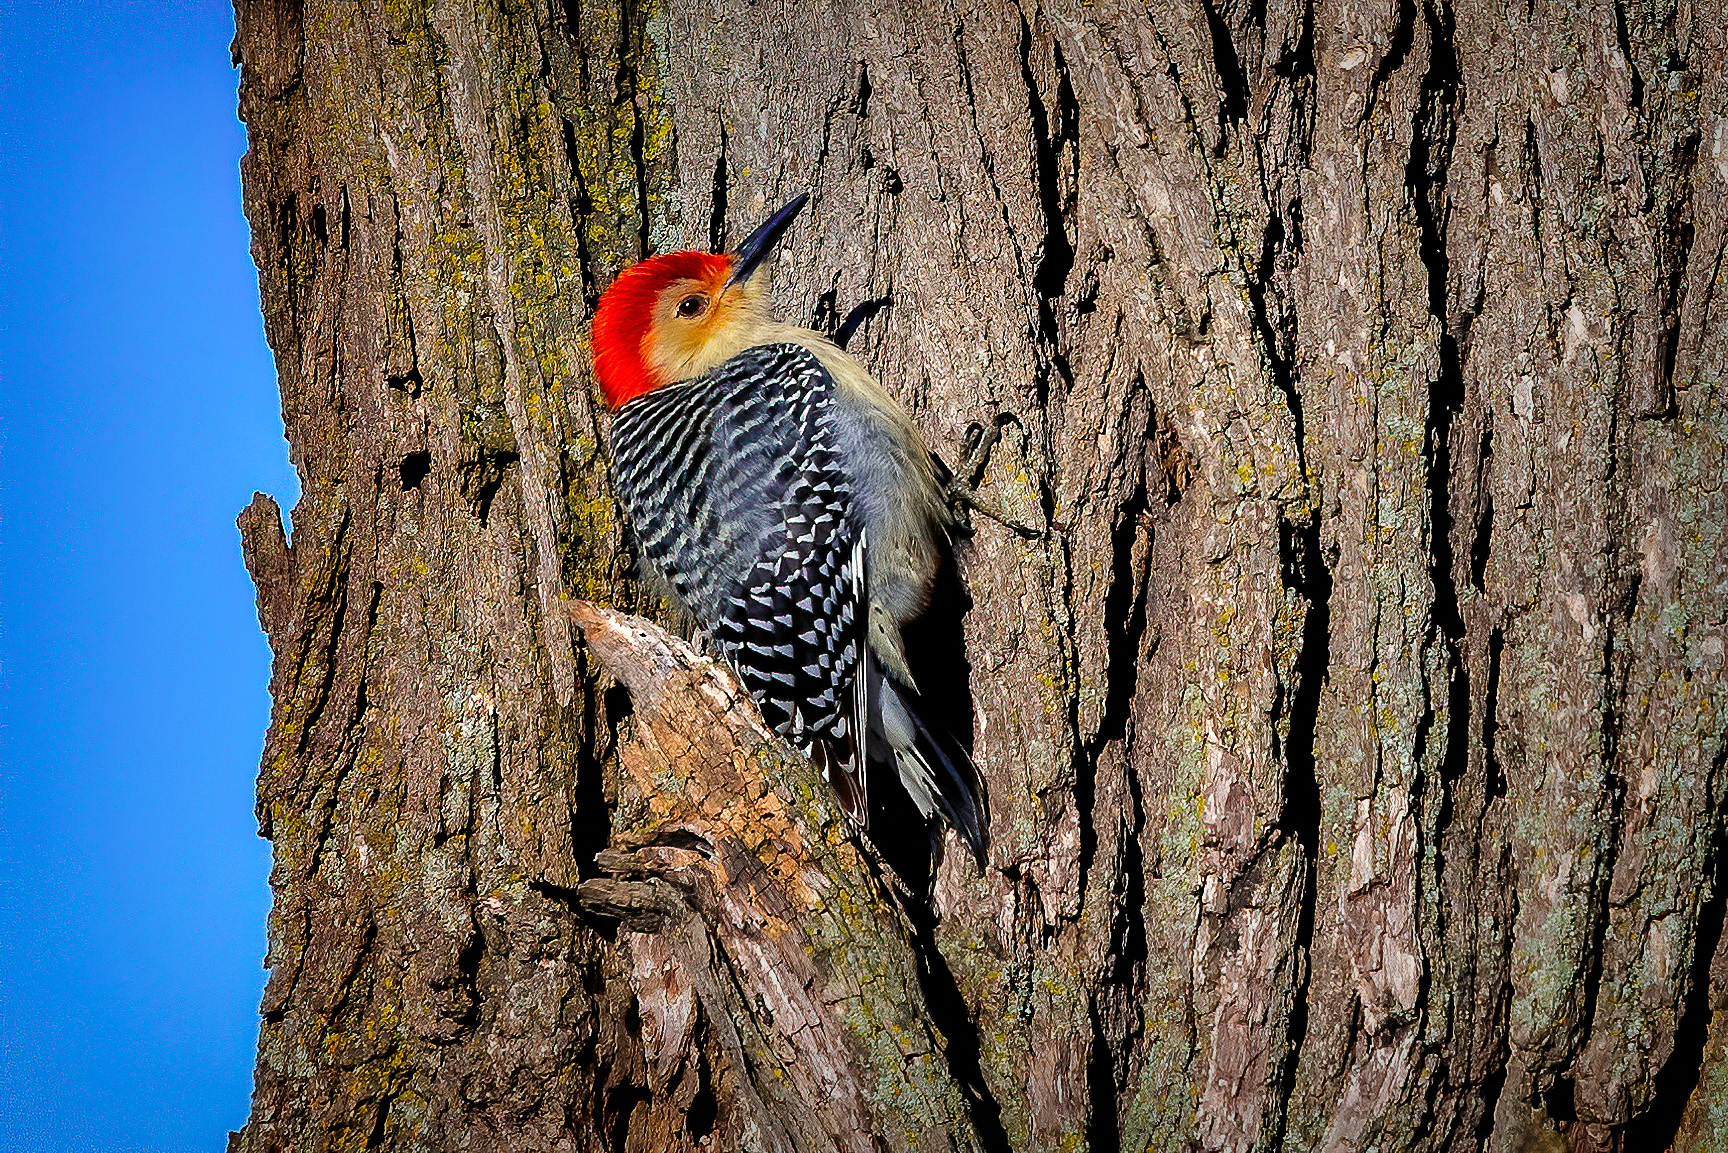 A red-bellied woodpecker checks out a tree on New Year's Day 2020. nature, wildlife, animal, bird, red-bellied woodpecker Photo: Tim Chapman